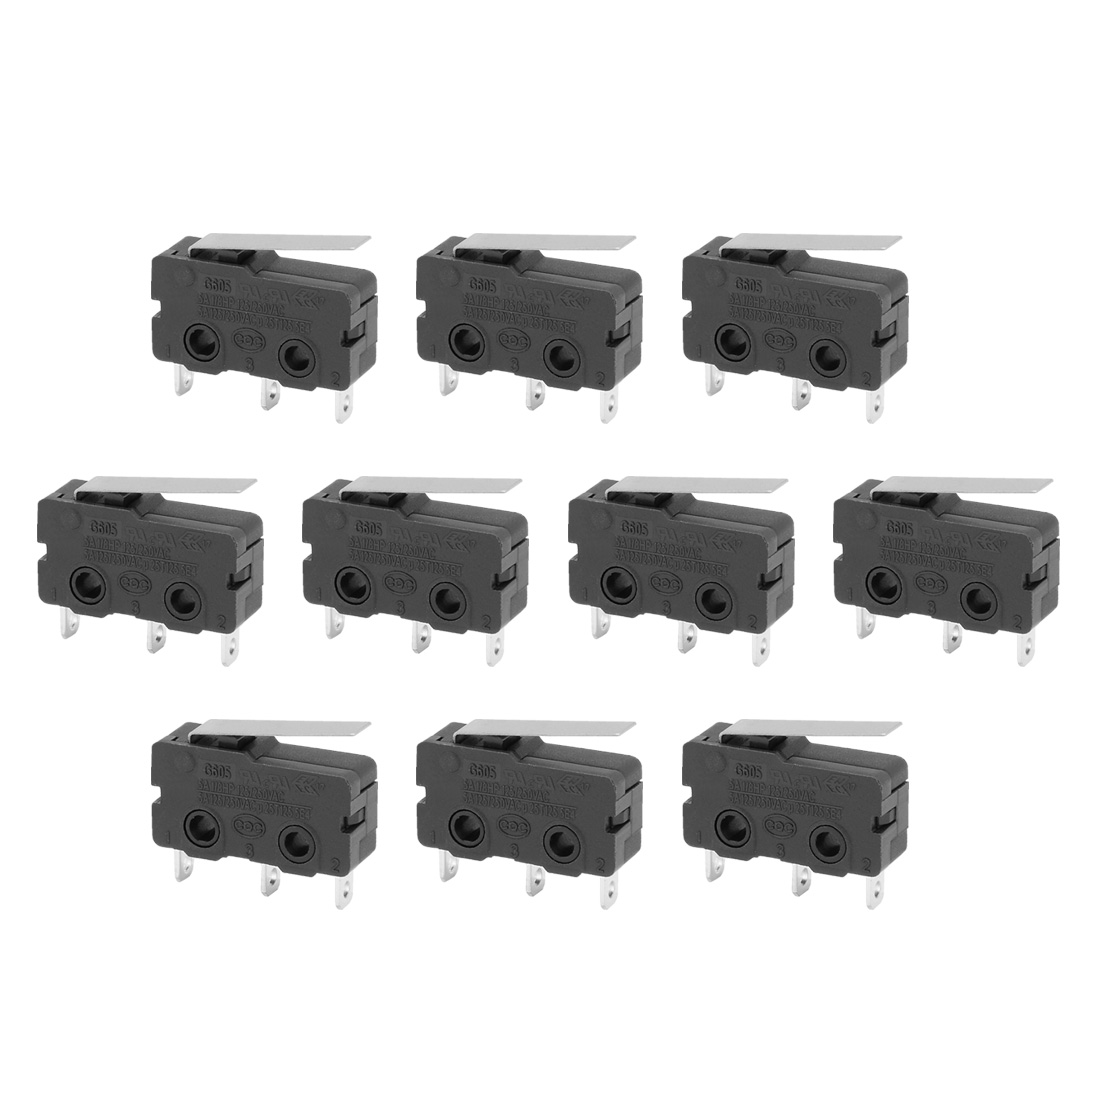 10Pcs G606-150S03A Short Hinge Lever 1 NO 1NC SPDT Momentary Micro Switch